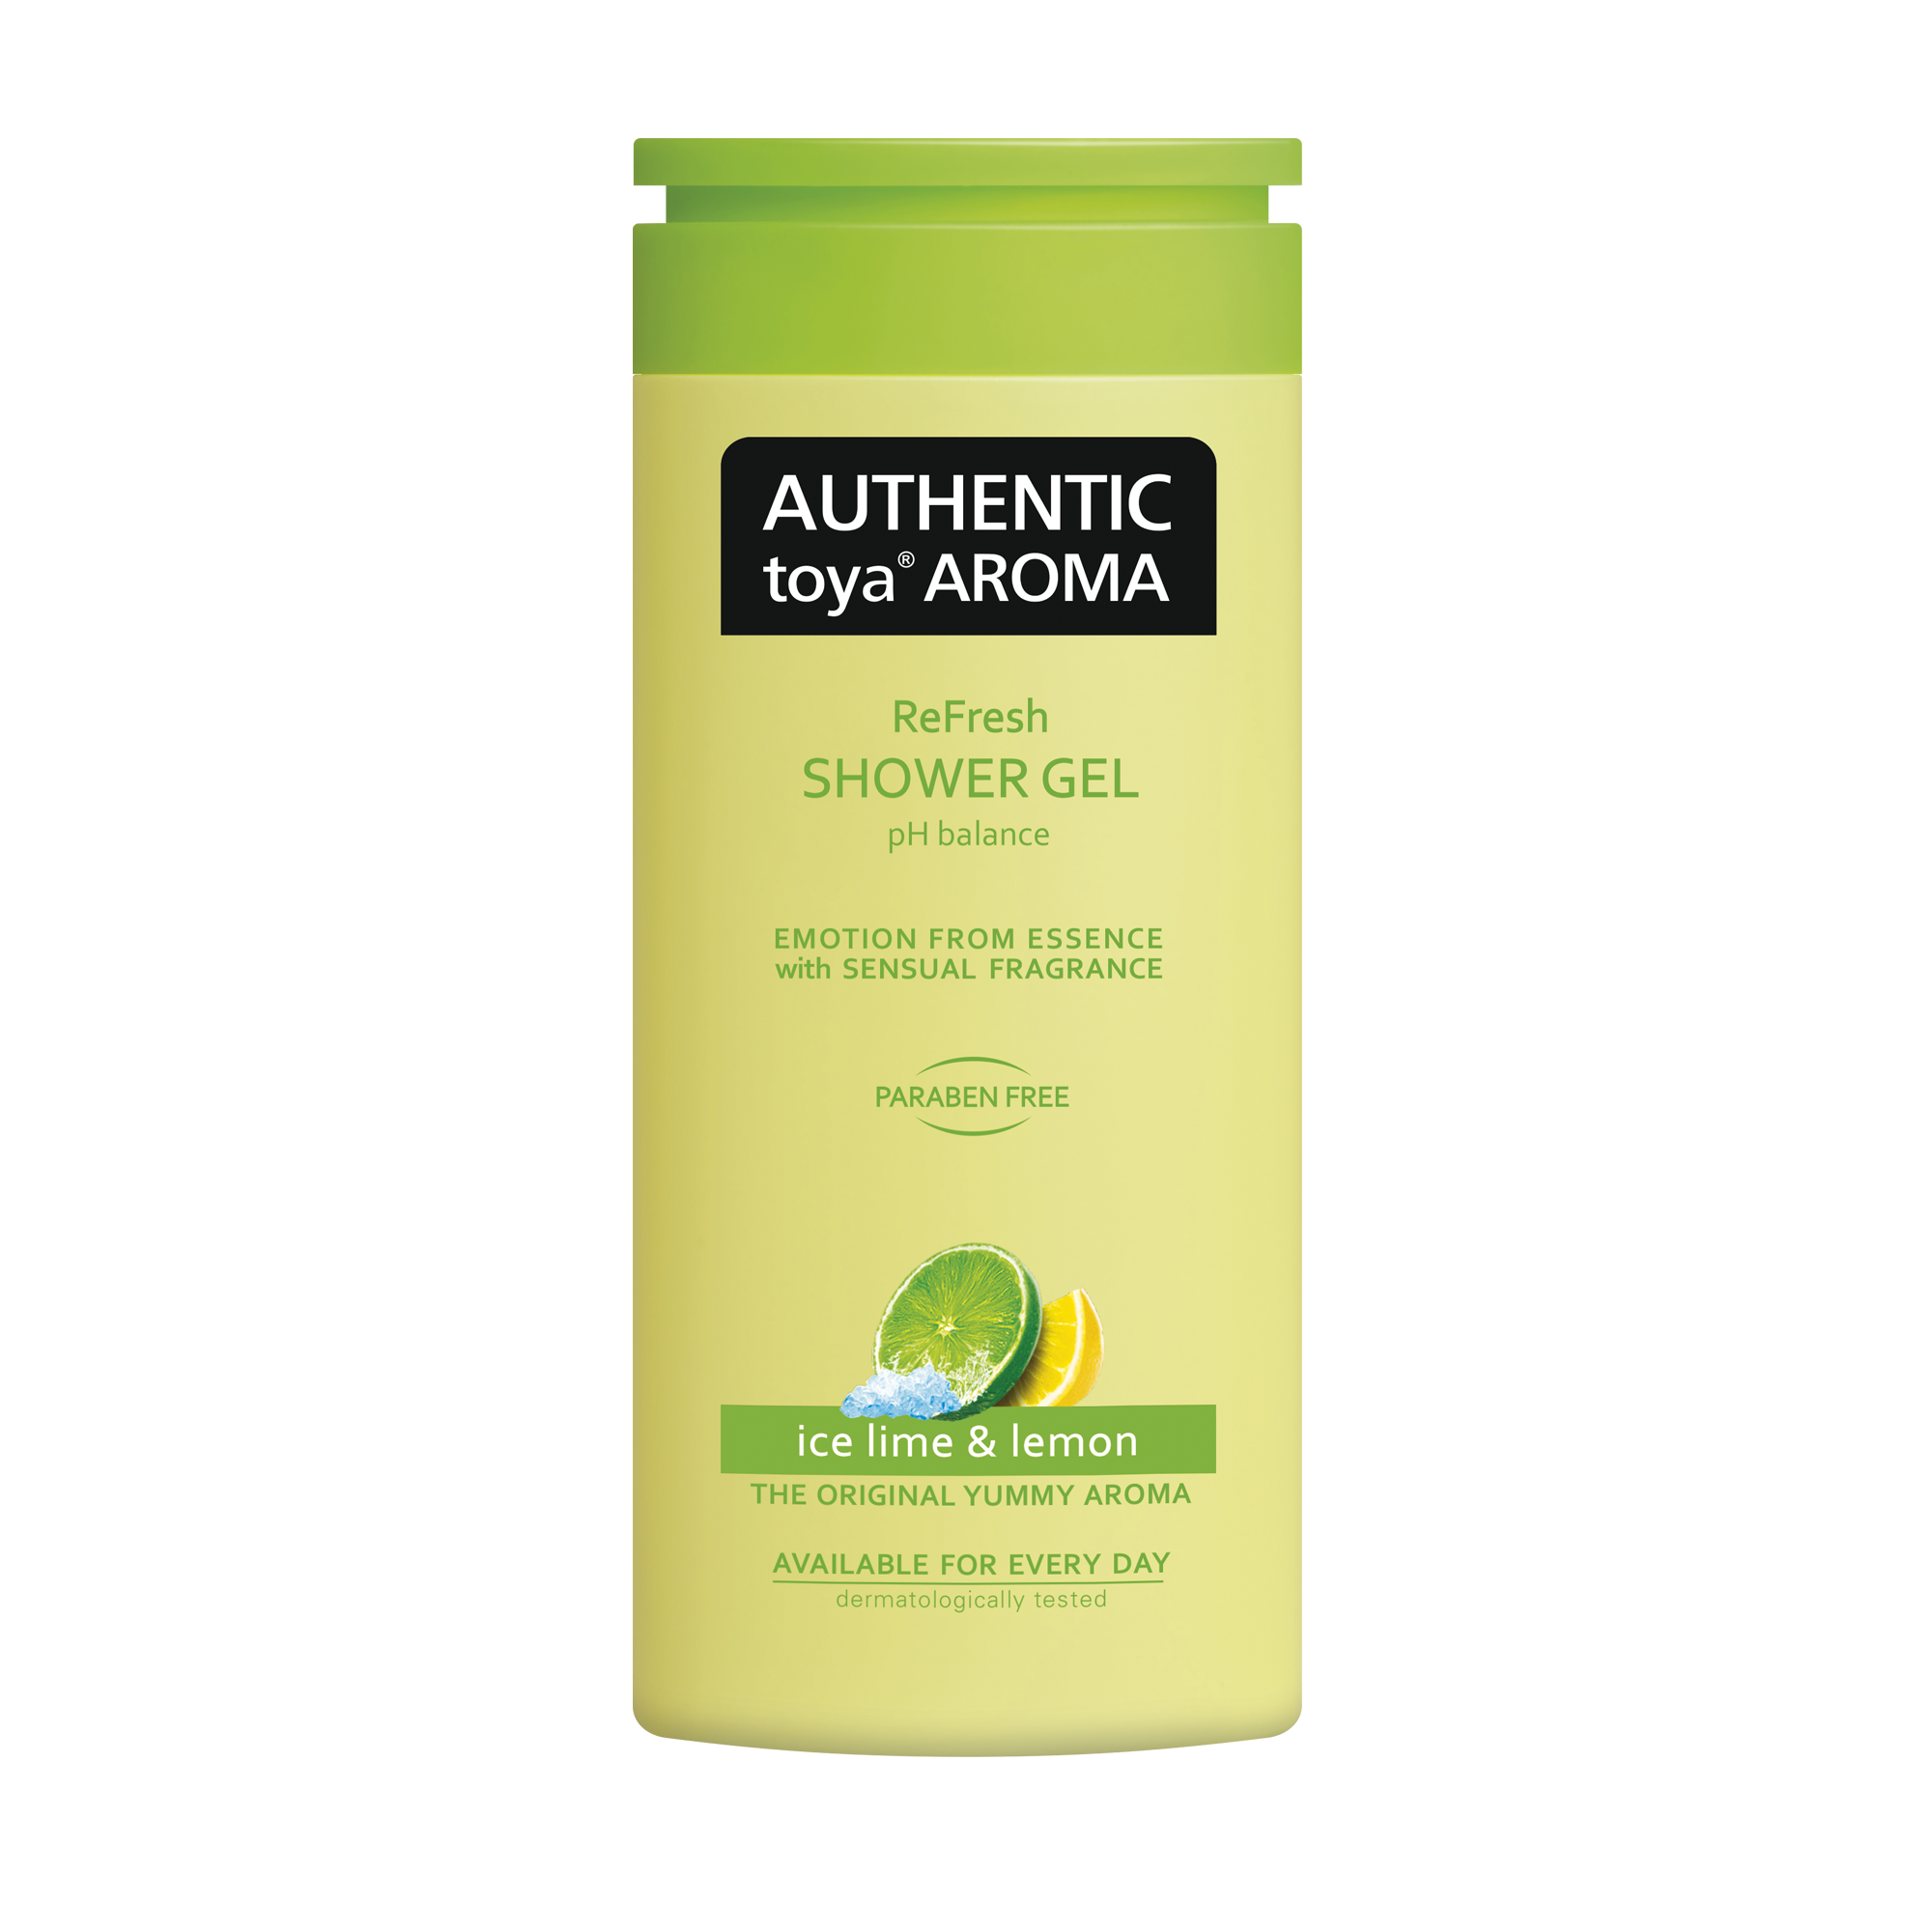 AUTHENTIC toya AROMA ice lime & lemon shower gel